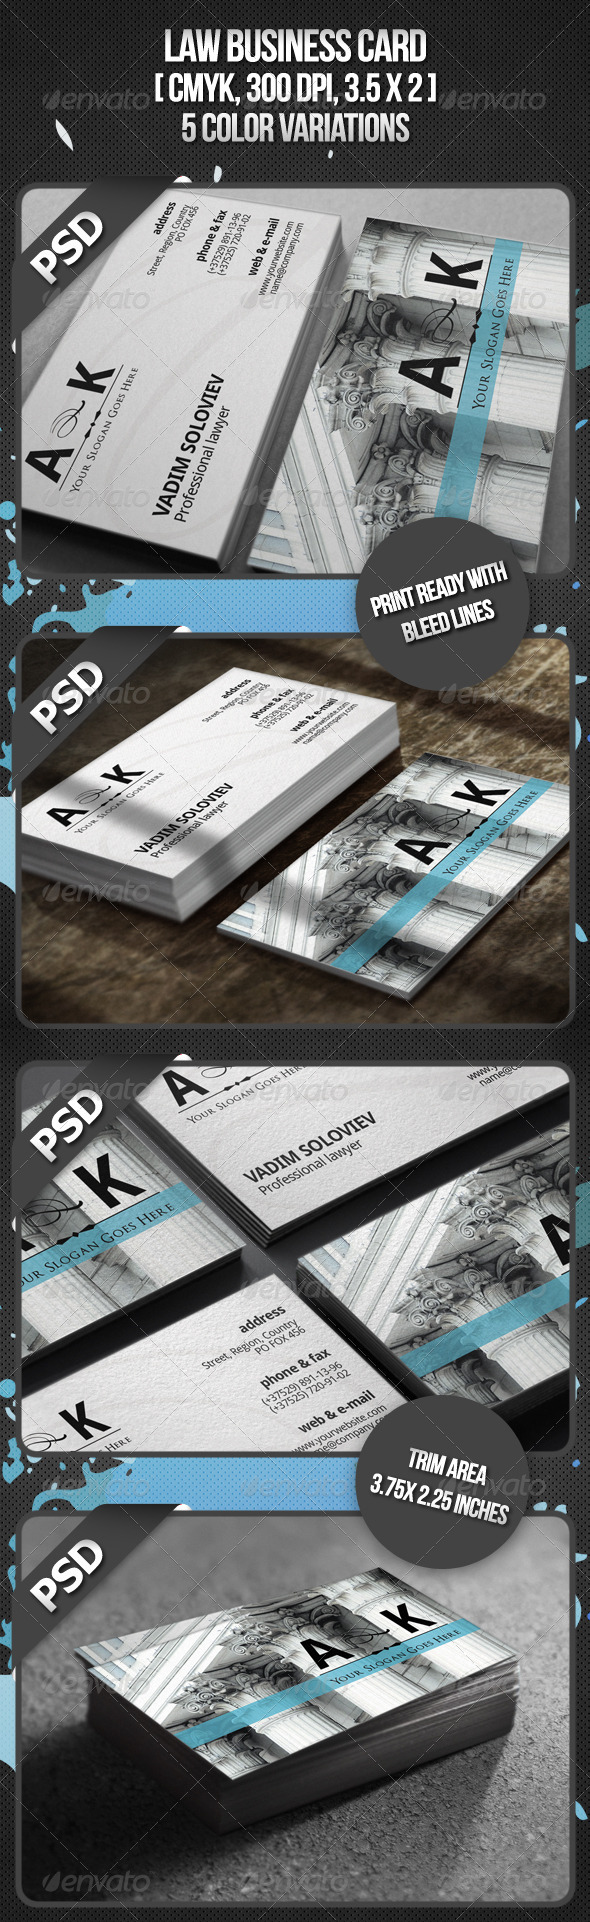 Graphic River Law Business Card Print Templates -  Business Cards  Industry Specific 738022